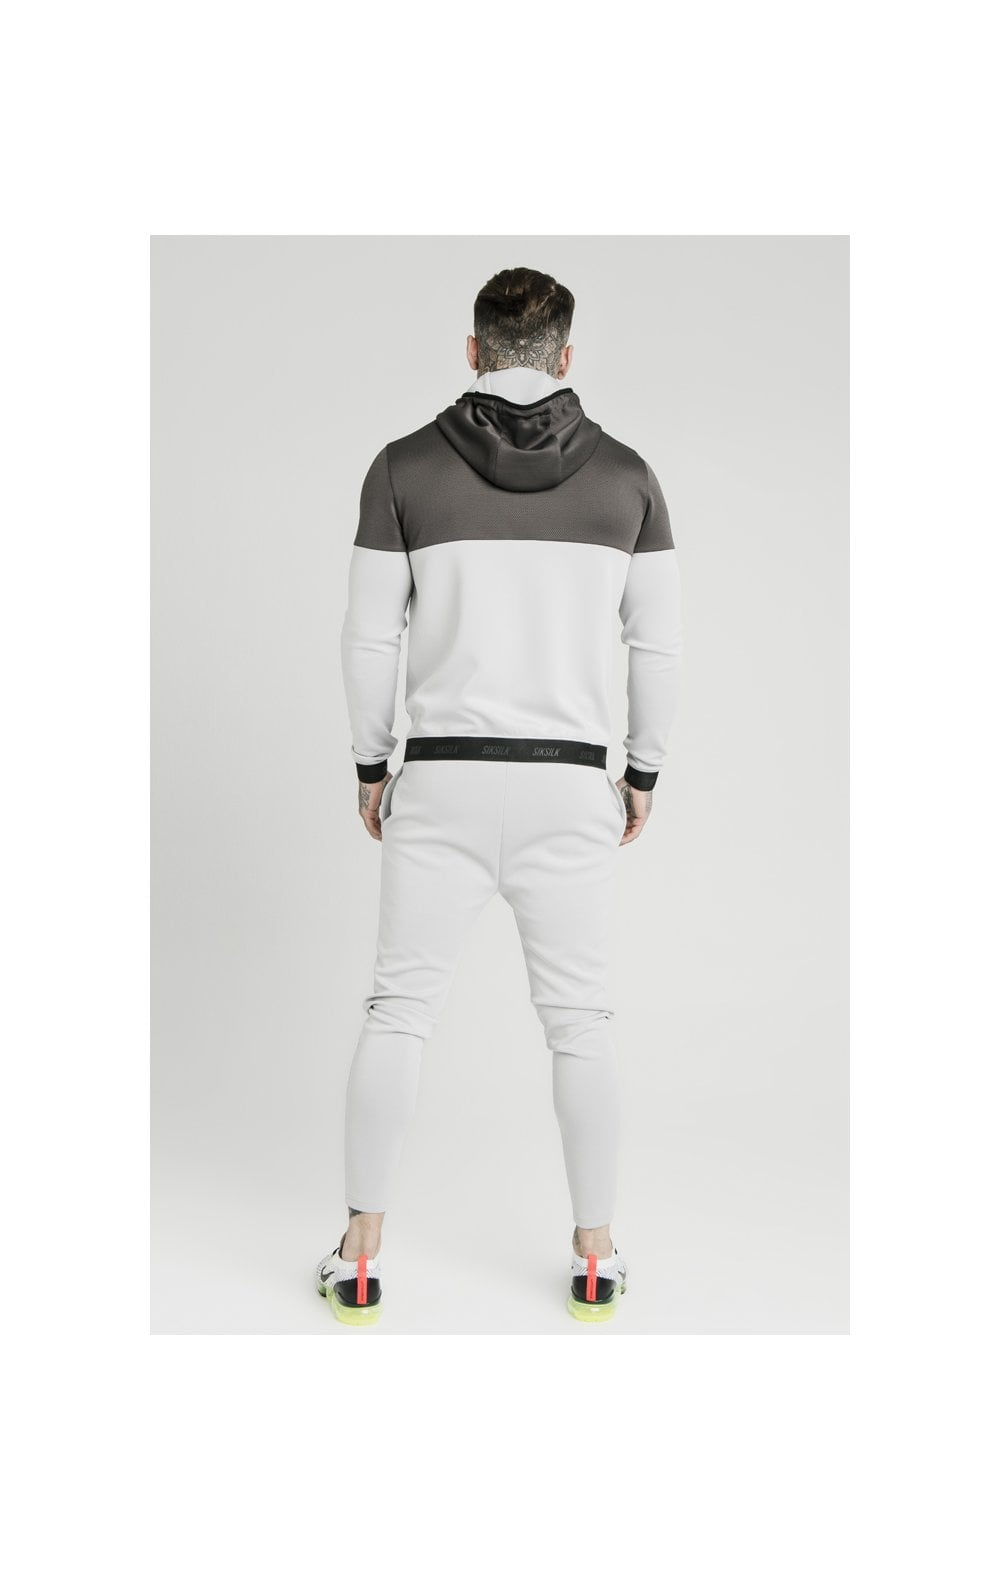 Load image into Gallery viewer, SikSilk Colour Block Agility - Anthracite & Ice Grey (5)